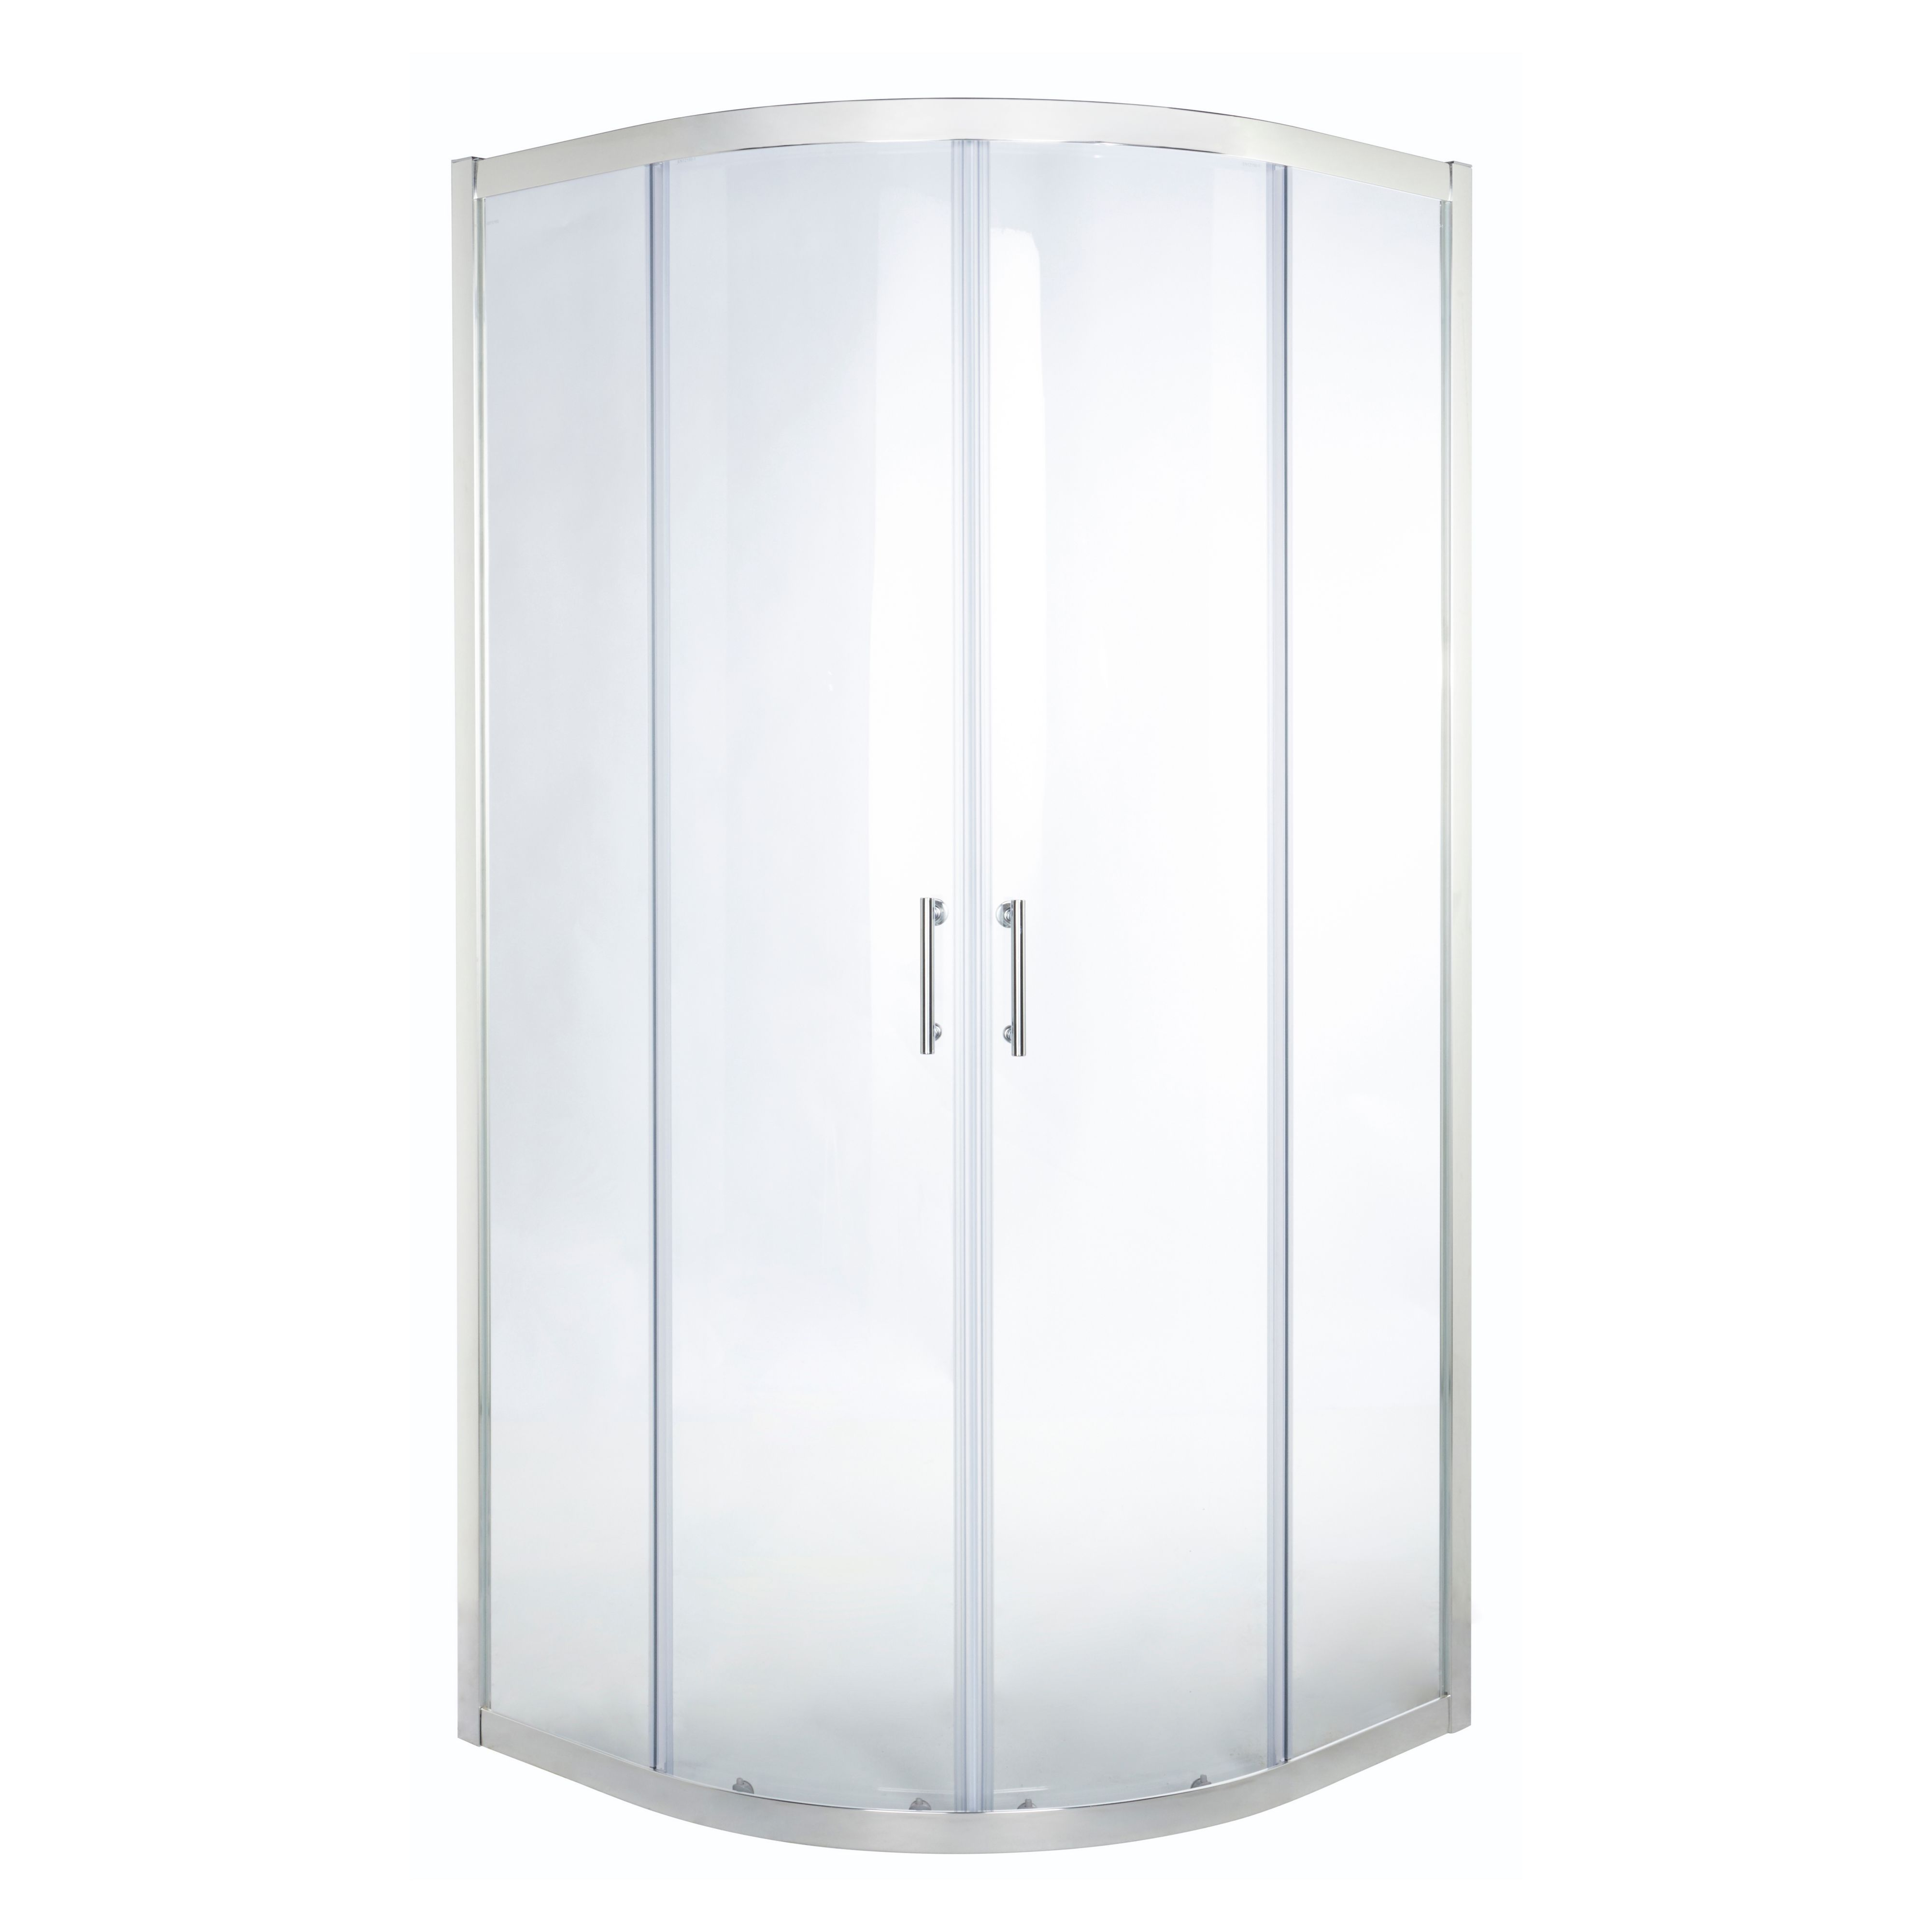 Cooke & Lewis Onega Quadrant Shower Enclosure With Corner Entry Double Sliding Door (w)800mm (d)800mm